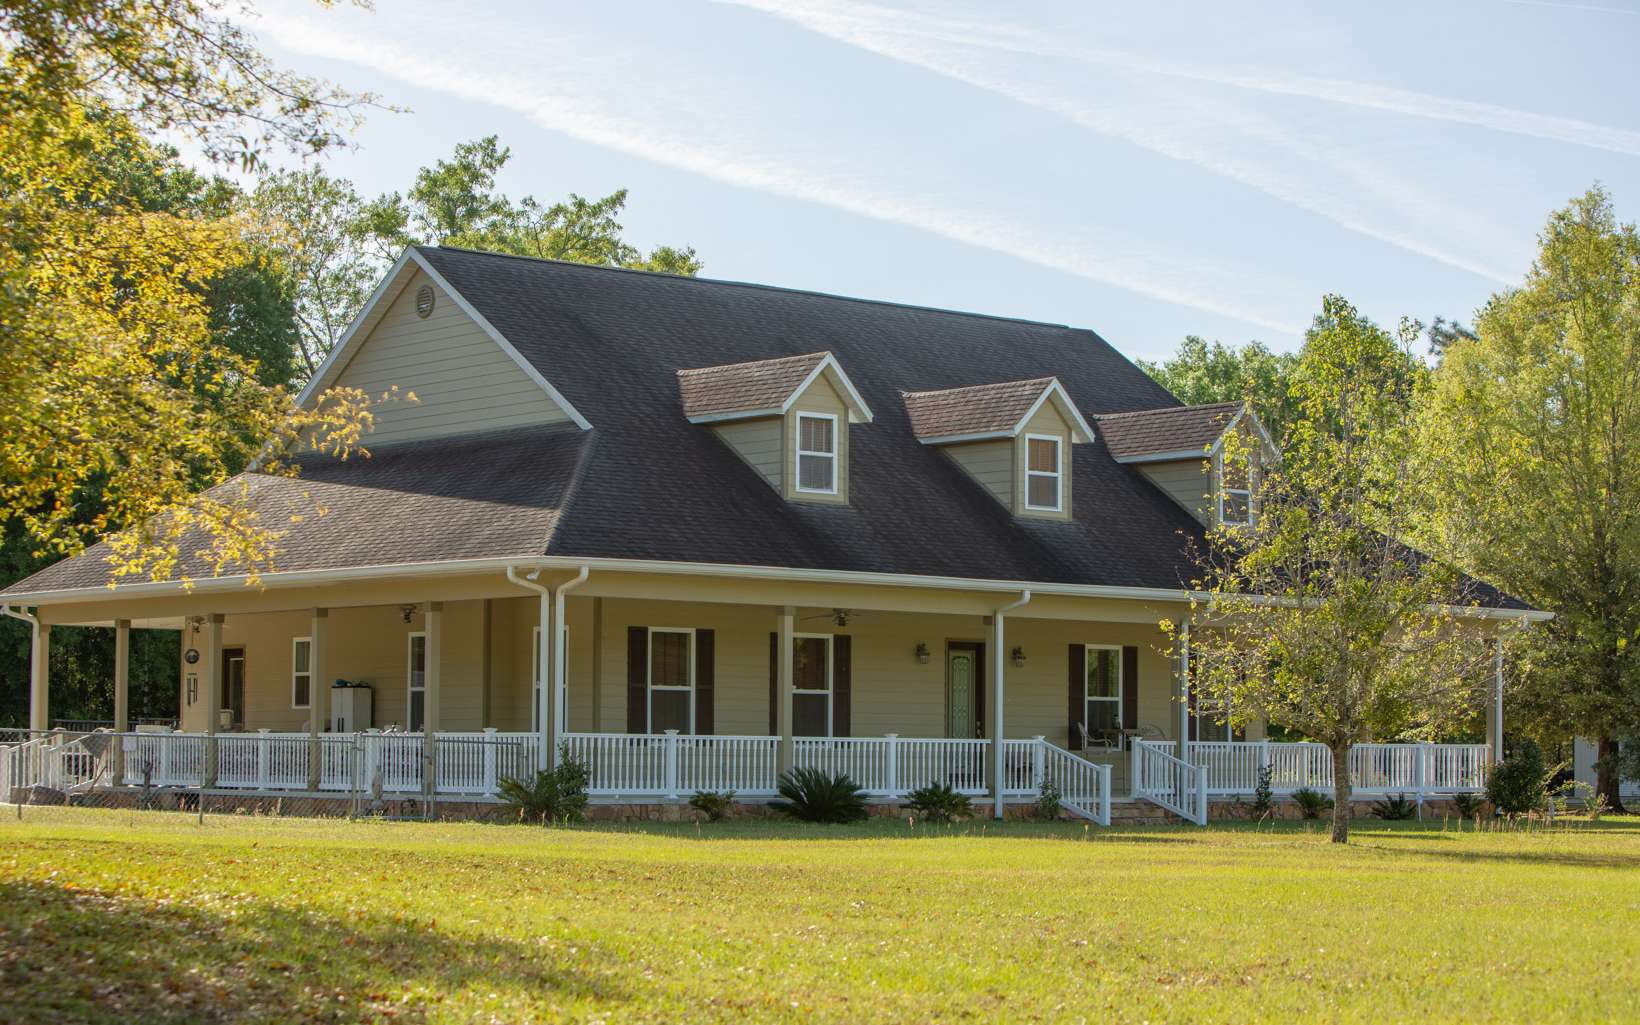 Homes on acreage for sale in North FL